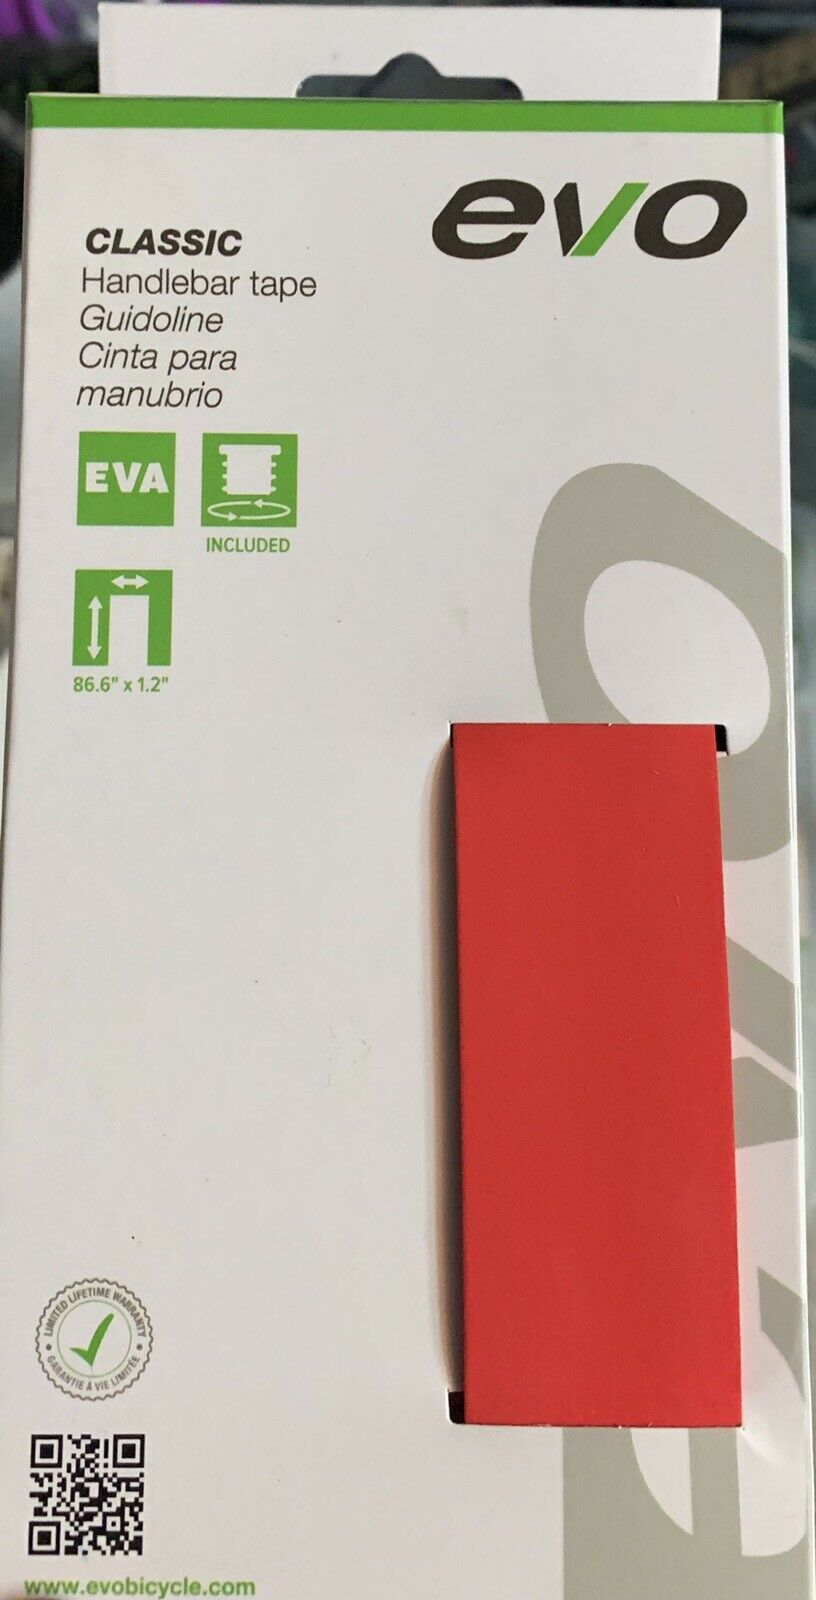 40x  Evo Classic Tape Red Eva Foam Handlebar bicycle